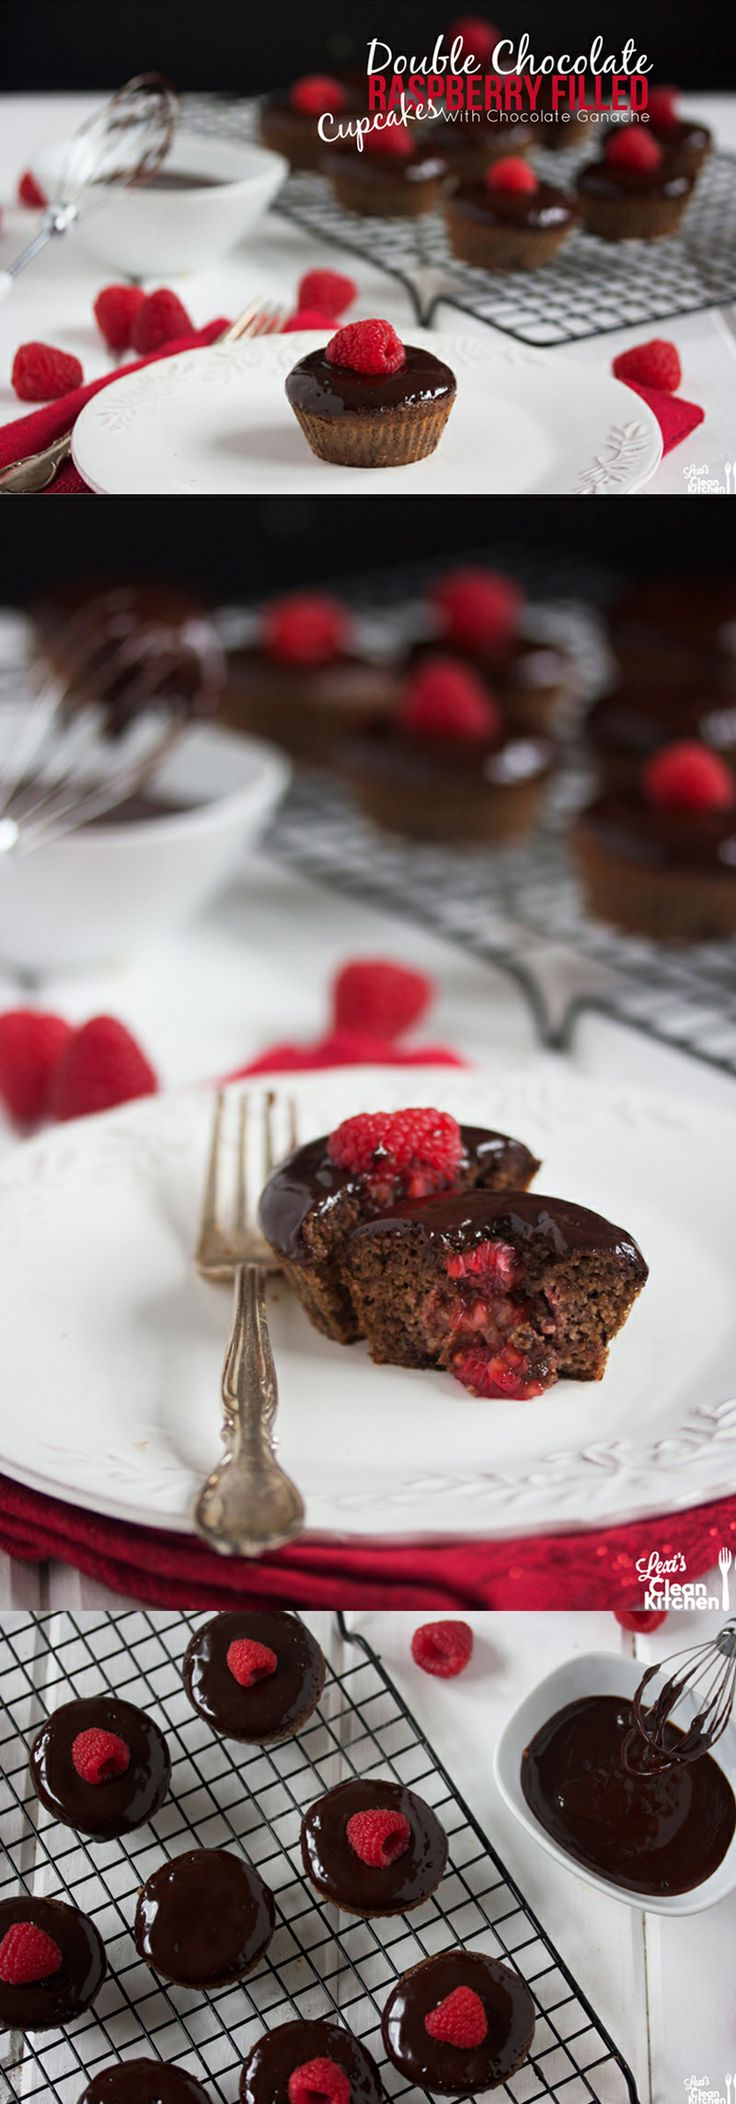 Double Chocolate Raspberry Filled Cupcakes with Chocolate Ganache {Gluten-Free, Dairy-Free, Paleo, and under 150 calories!} @American Express #spon